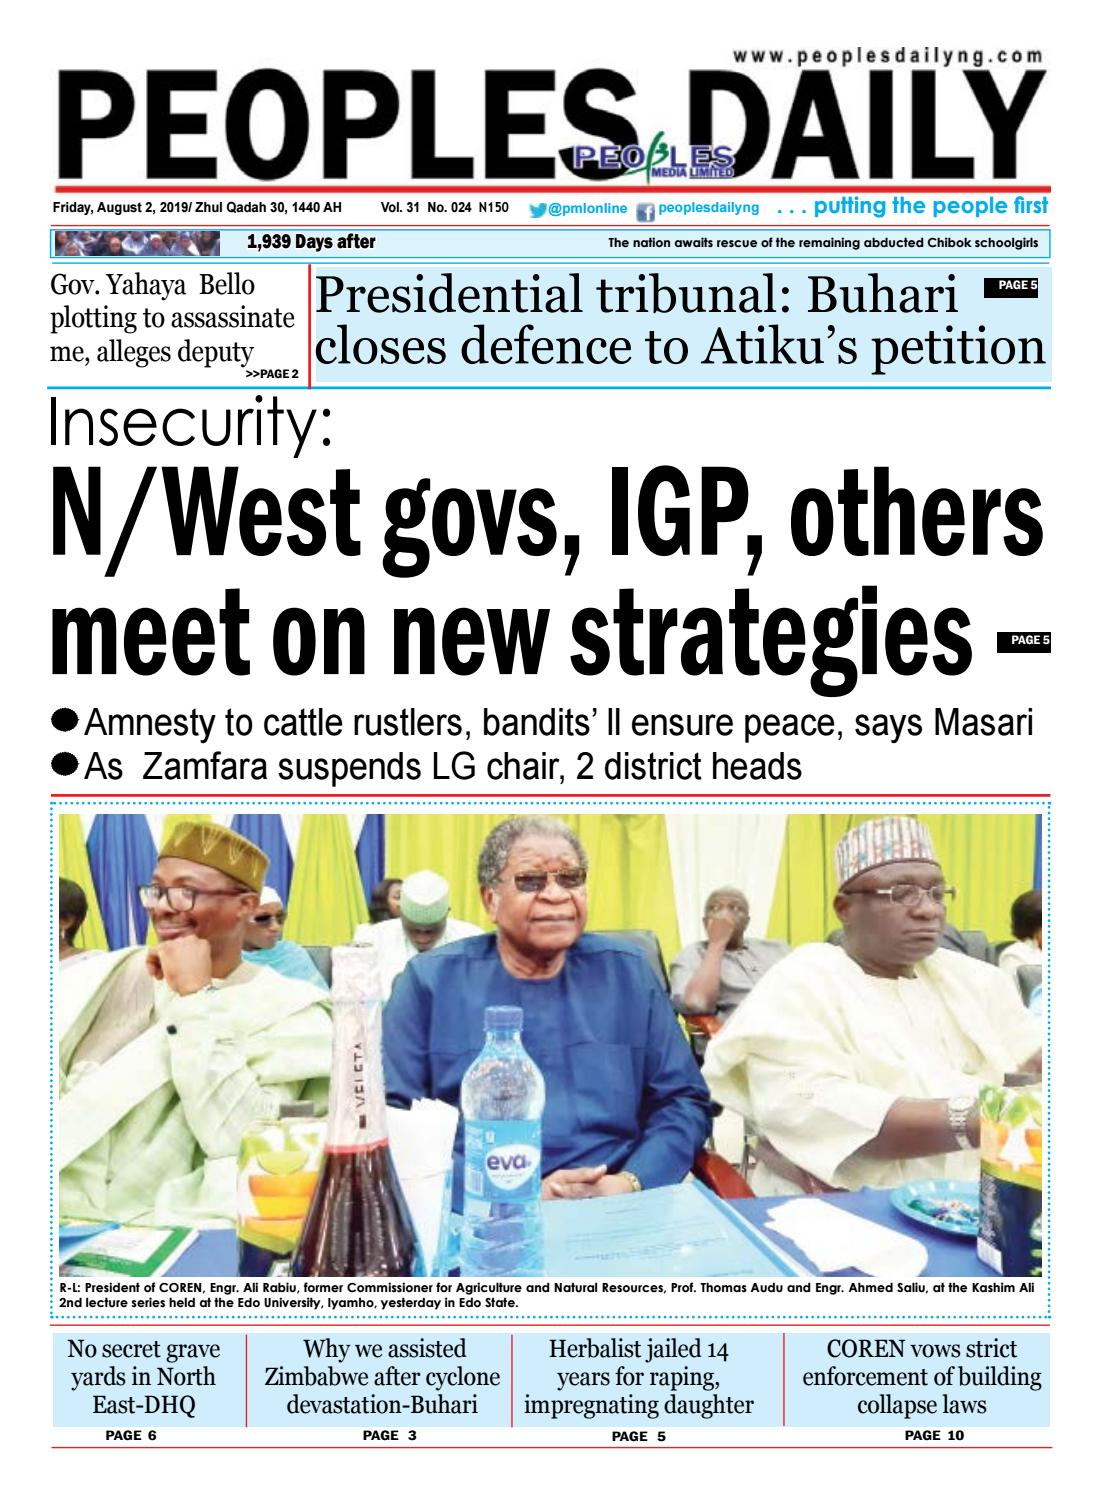 Friday, August 2, 2019 Edition by Peoples Media Limited - issuu